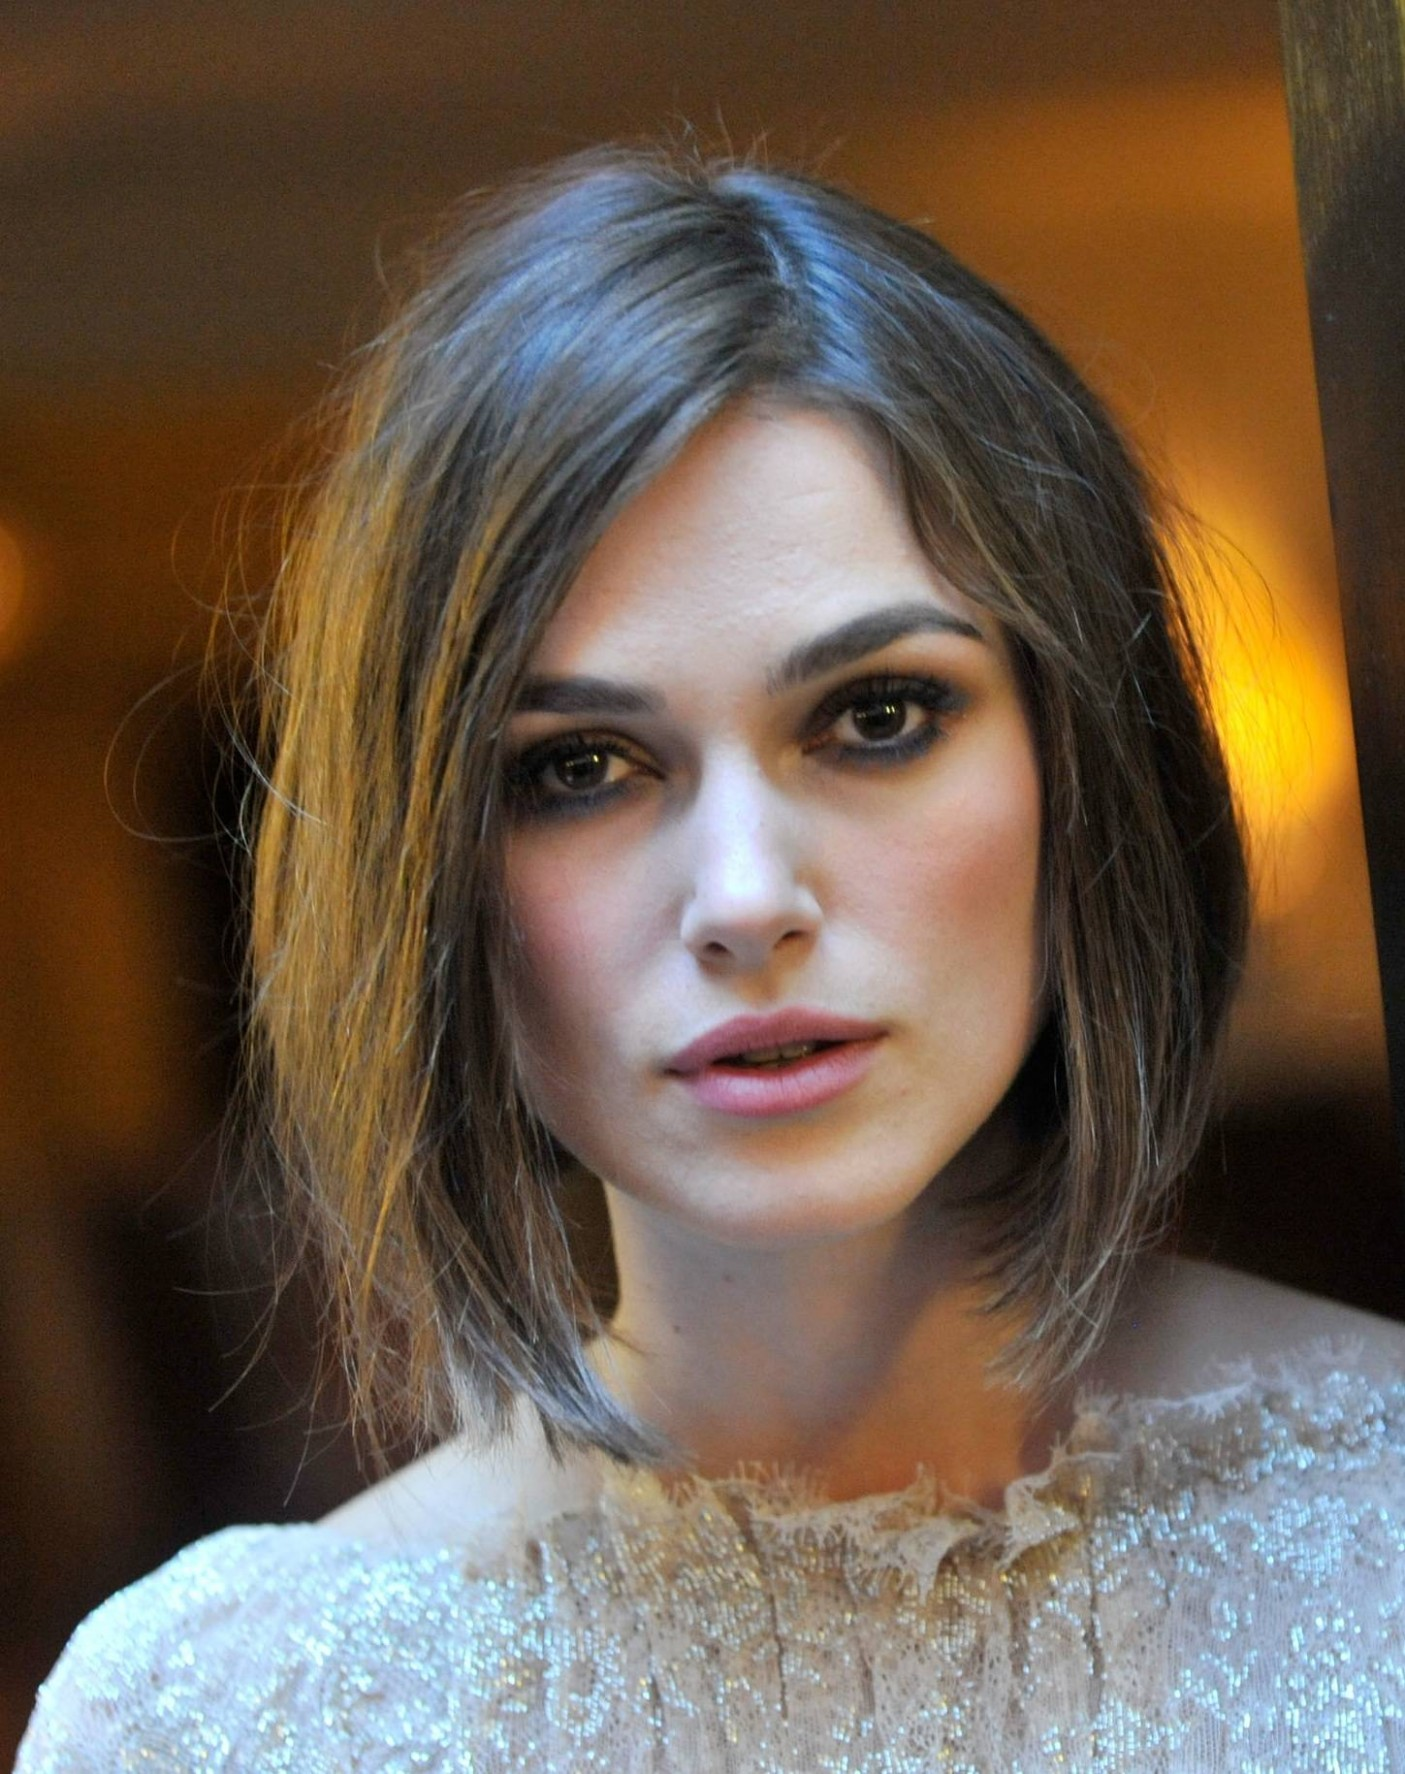 The Best Medium Length Haircuts For A Square Face Women Hairstyles Bob For Square Face